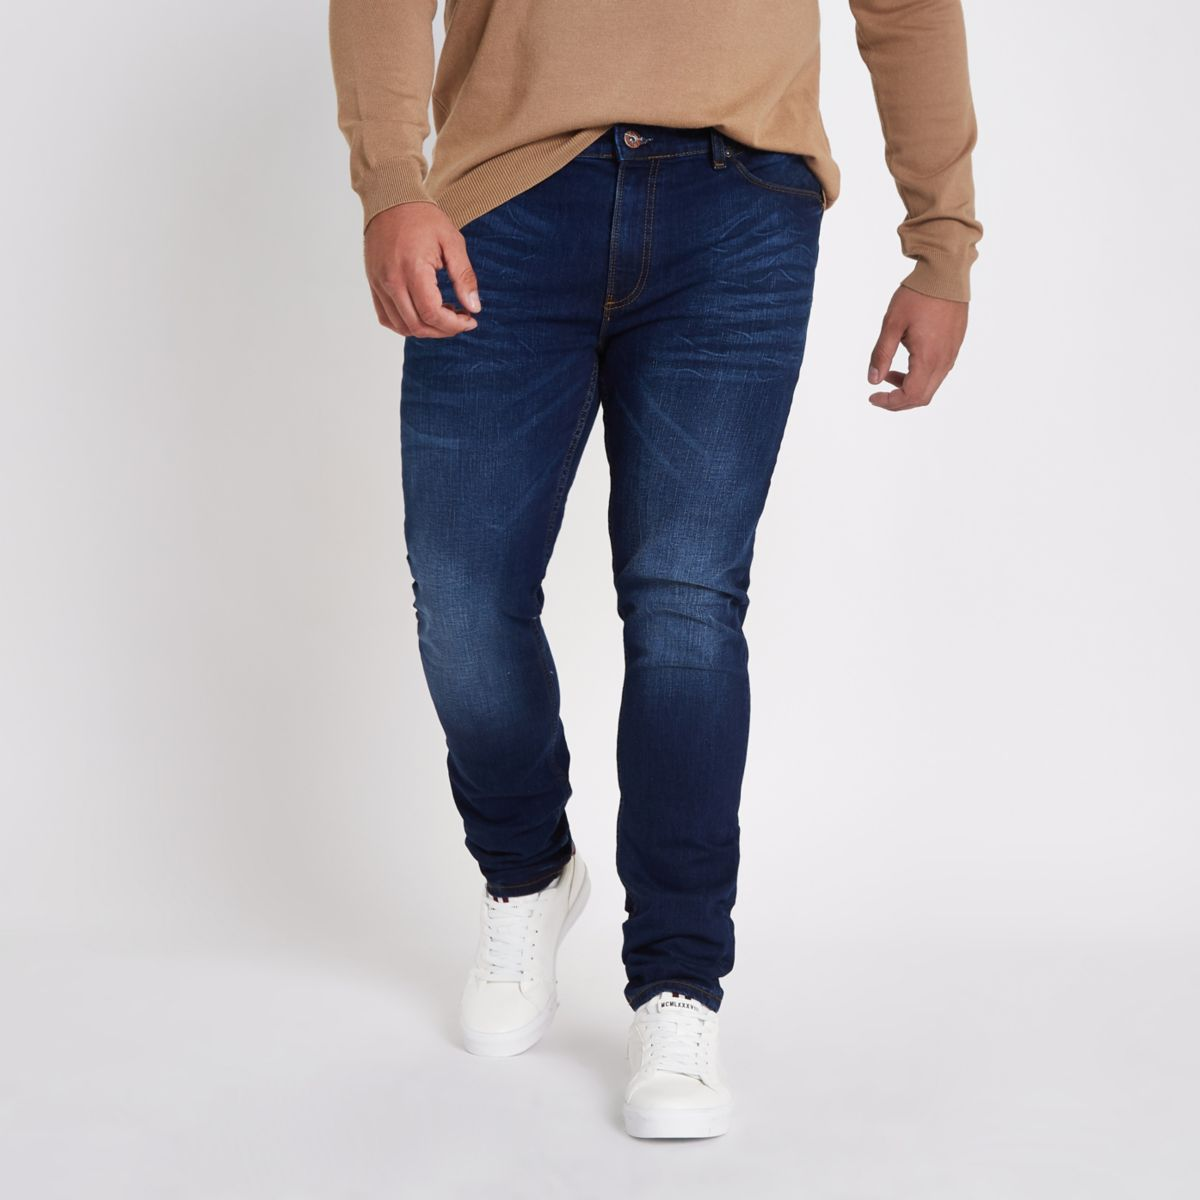 Free shipping BOTH ways on tall skinny jeans men, from our vast selection of styles. Fast delivery, and 24/7/ real-person service with a smile. Click or call